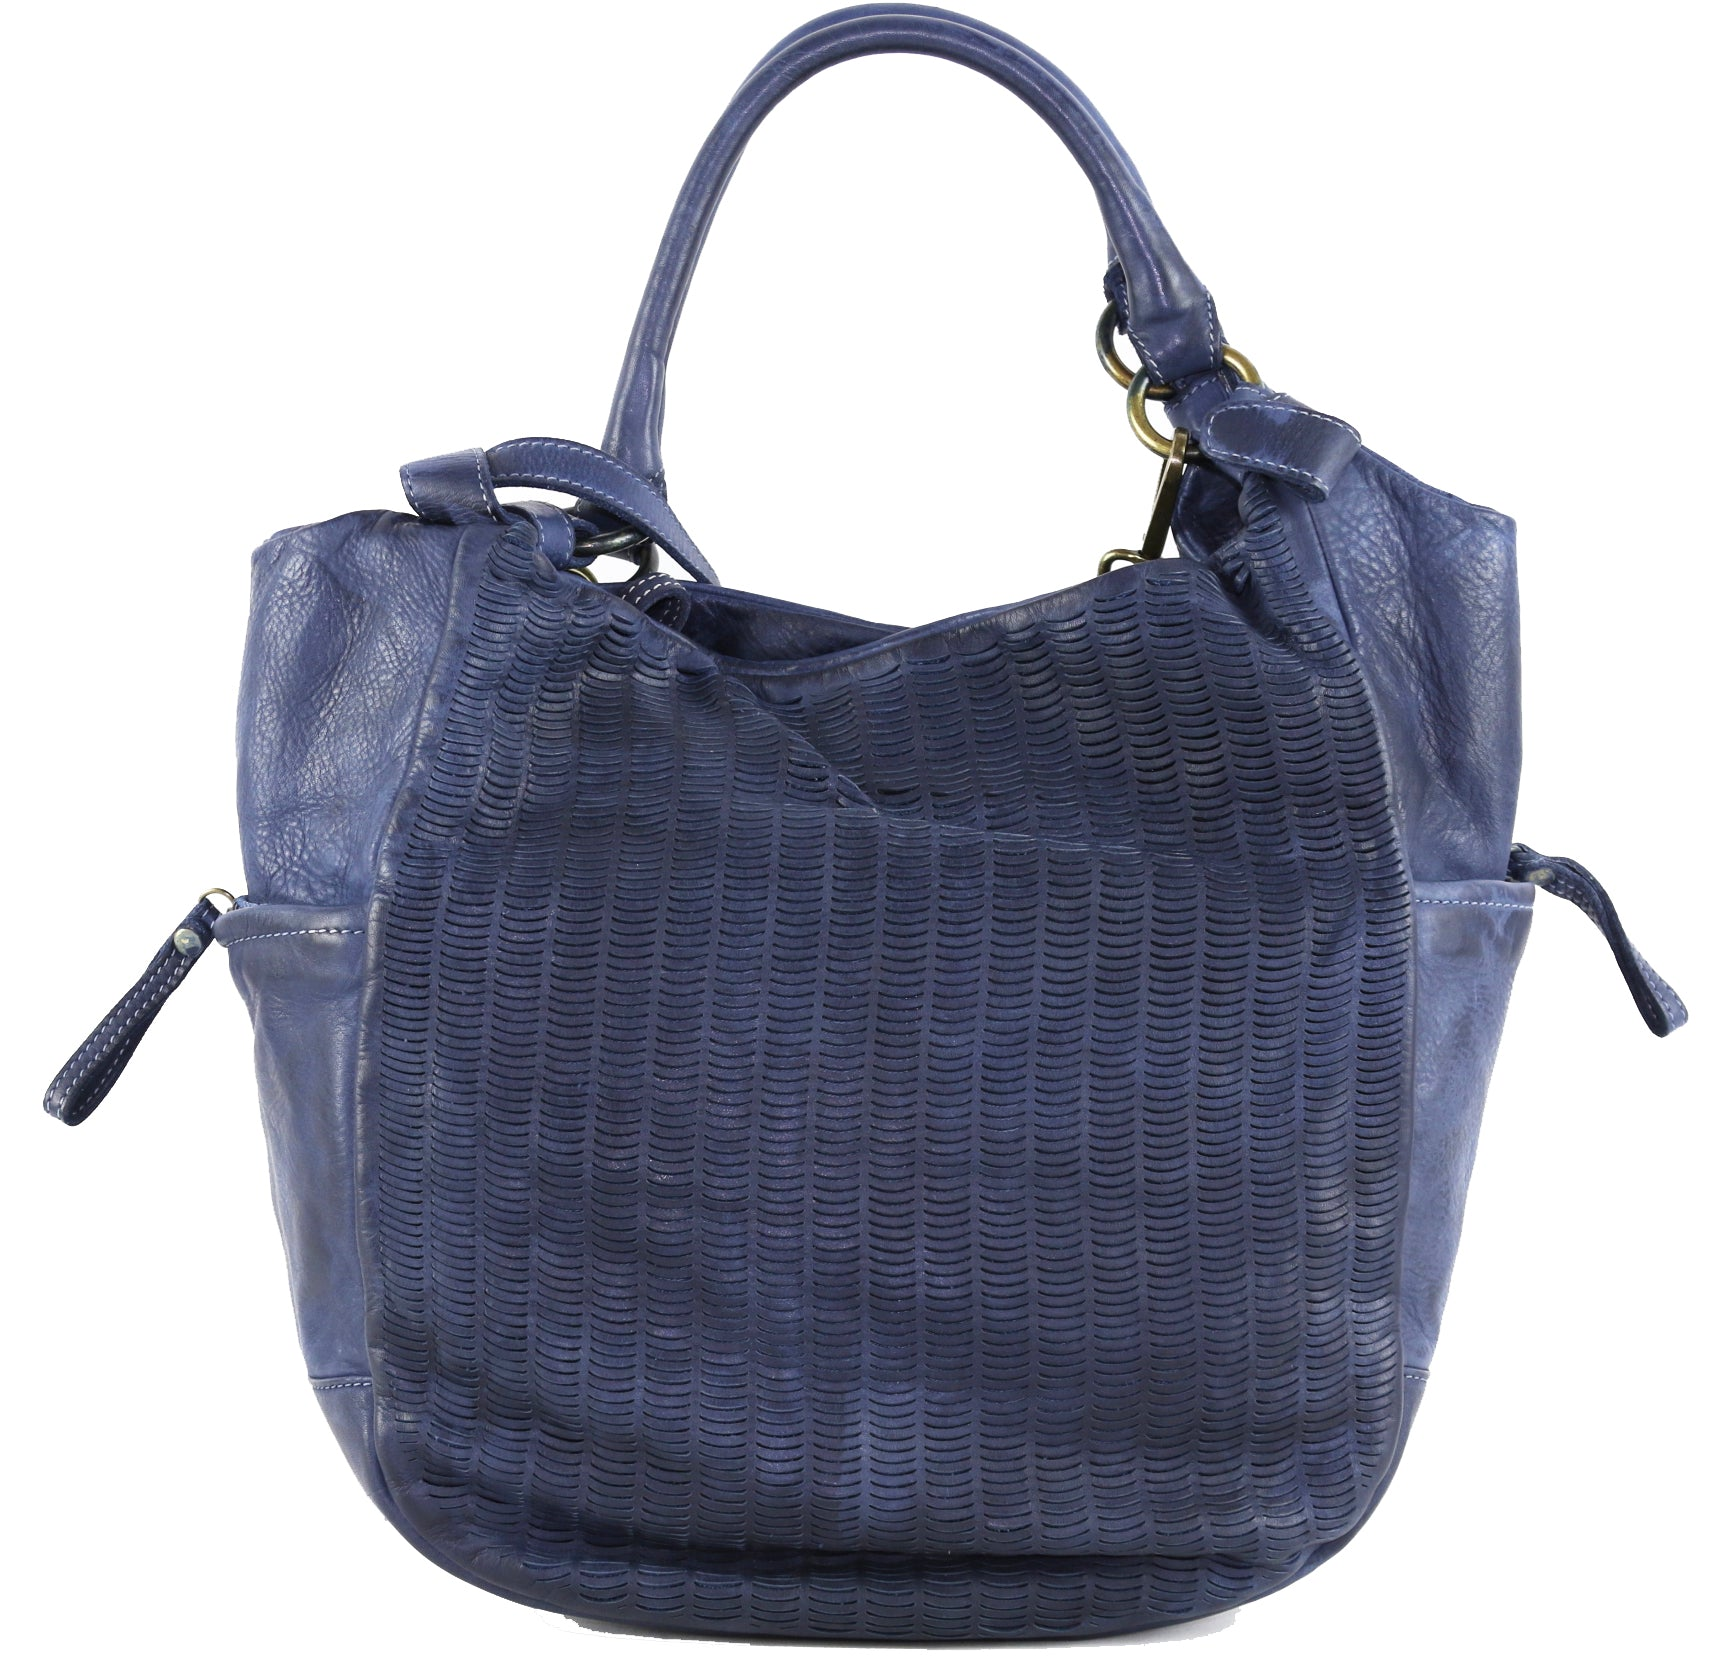 Giulia shoulder bag in Navy